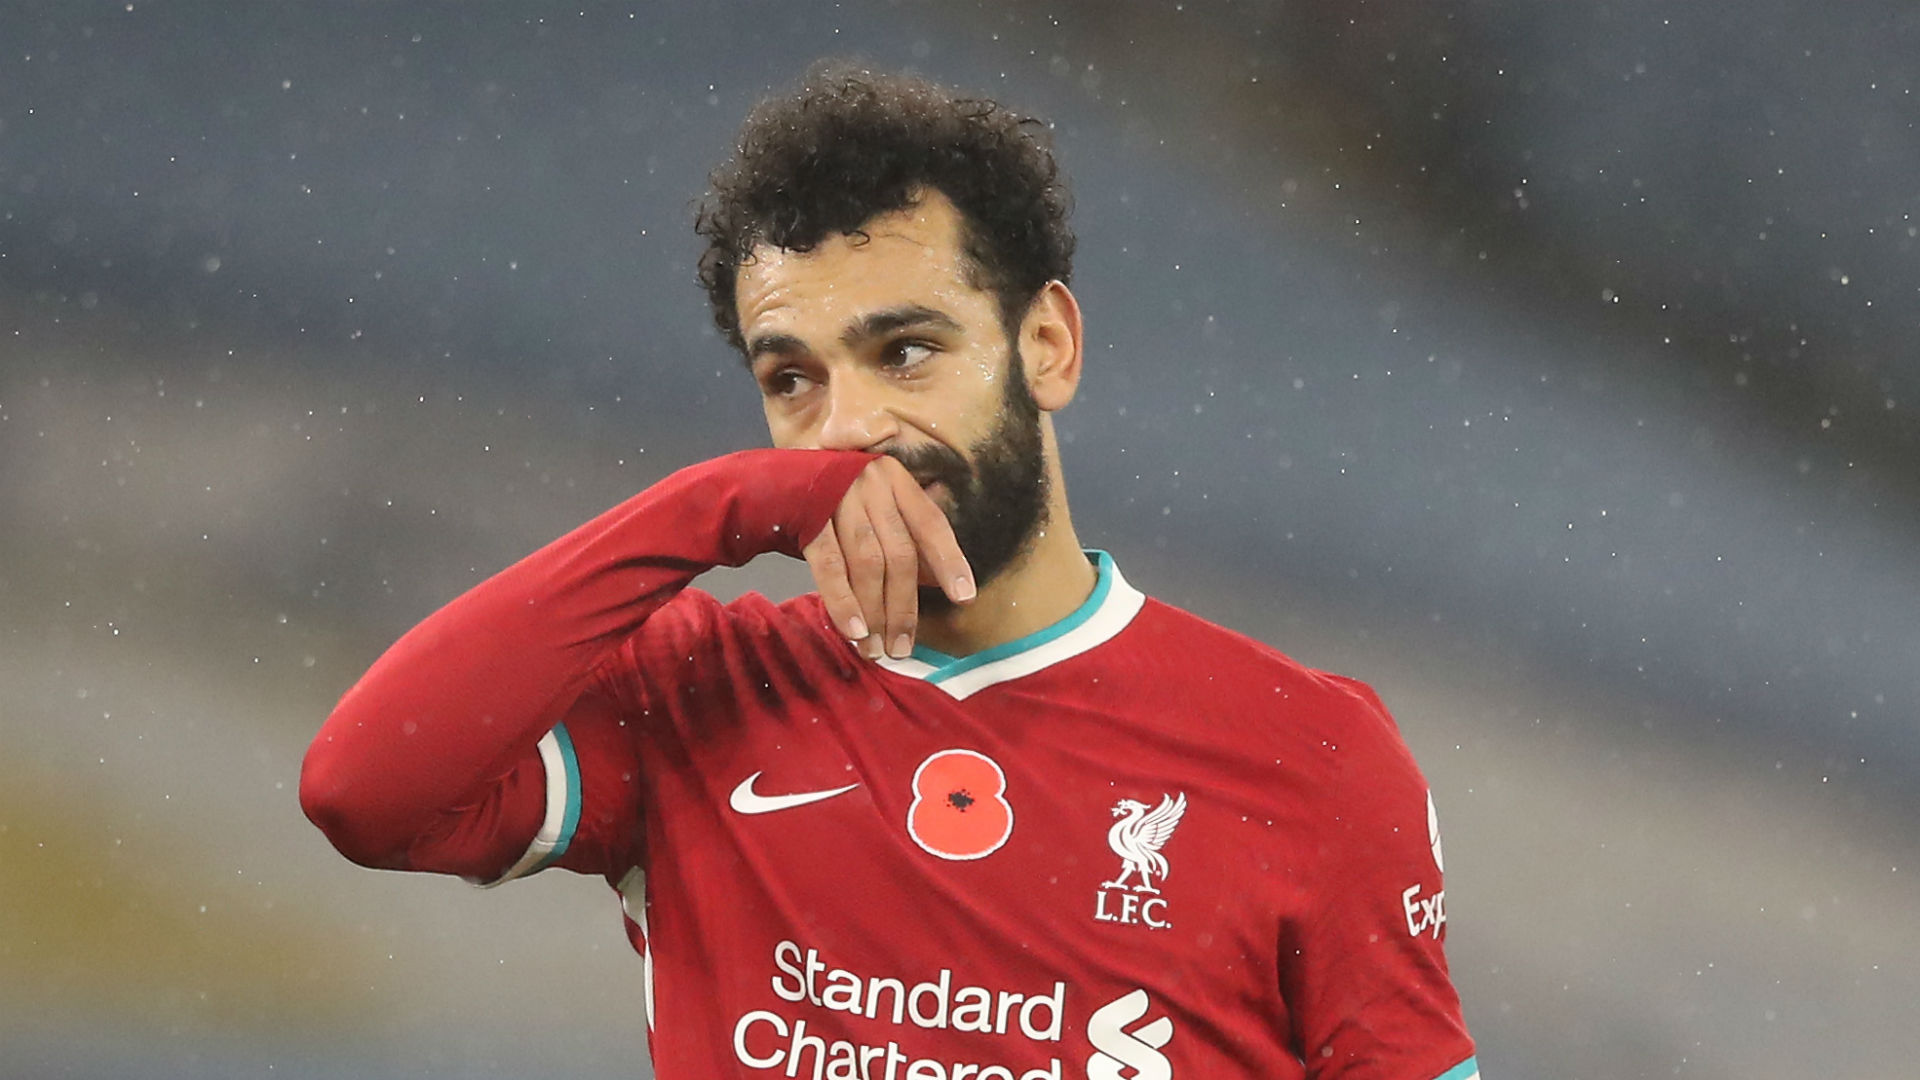 Liverpool are considering selling unhappy Salah – Aboutrika